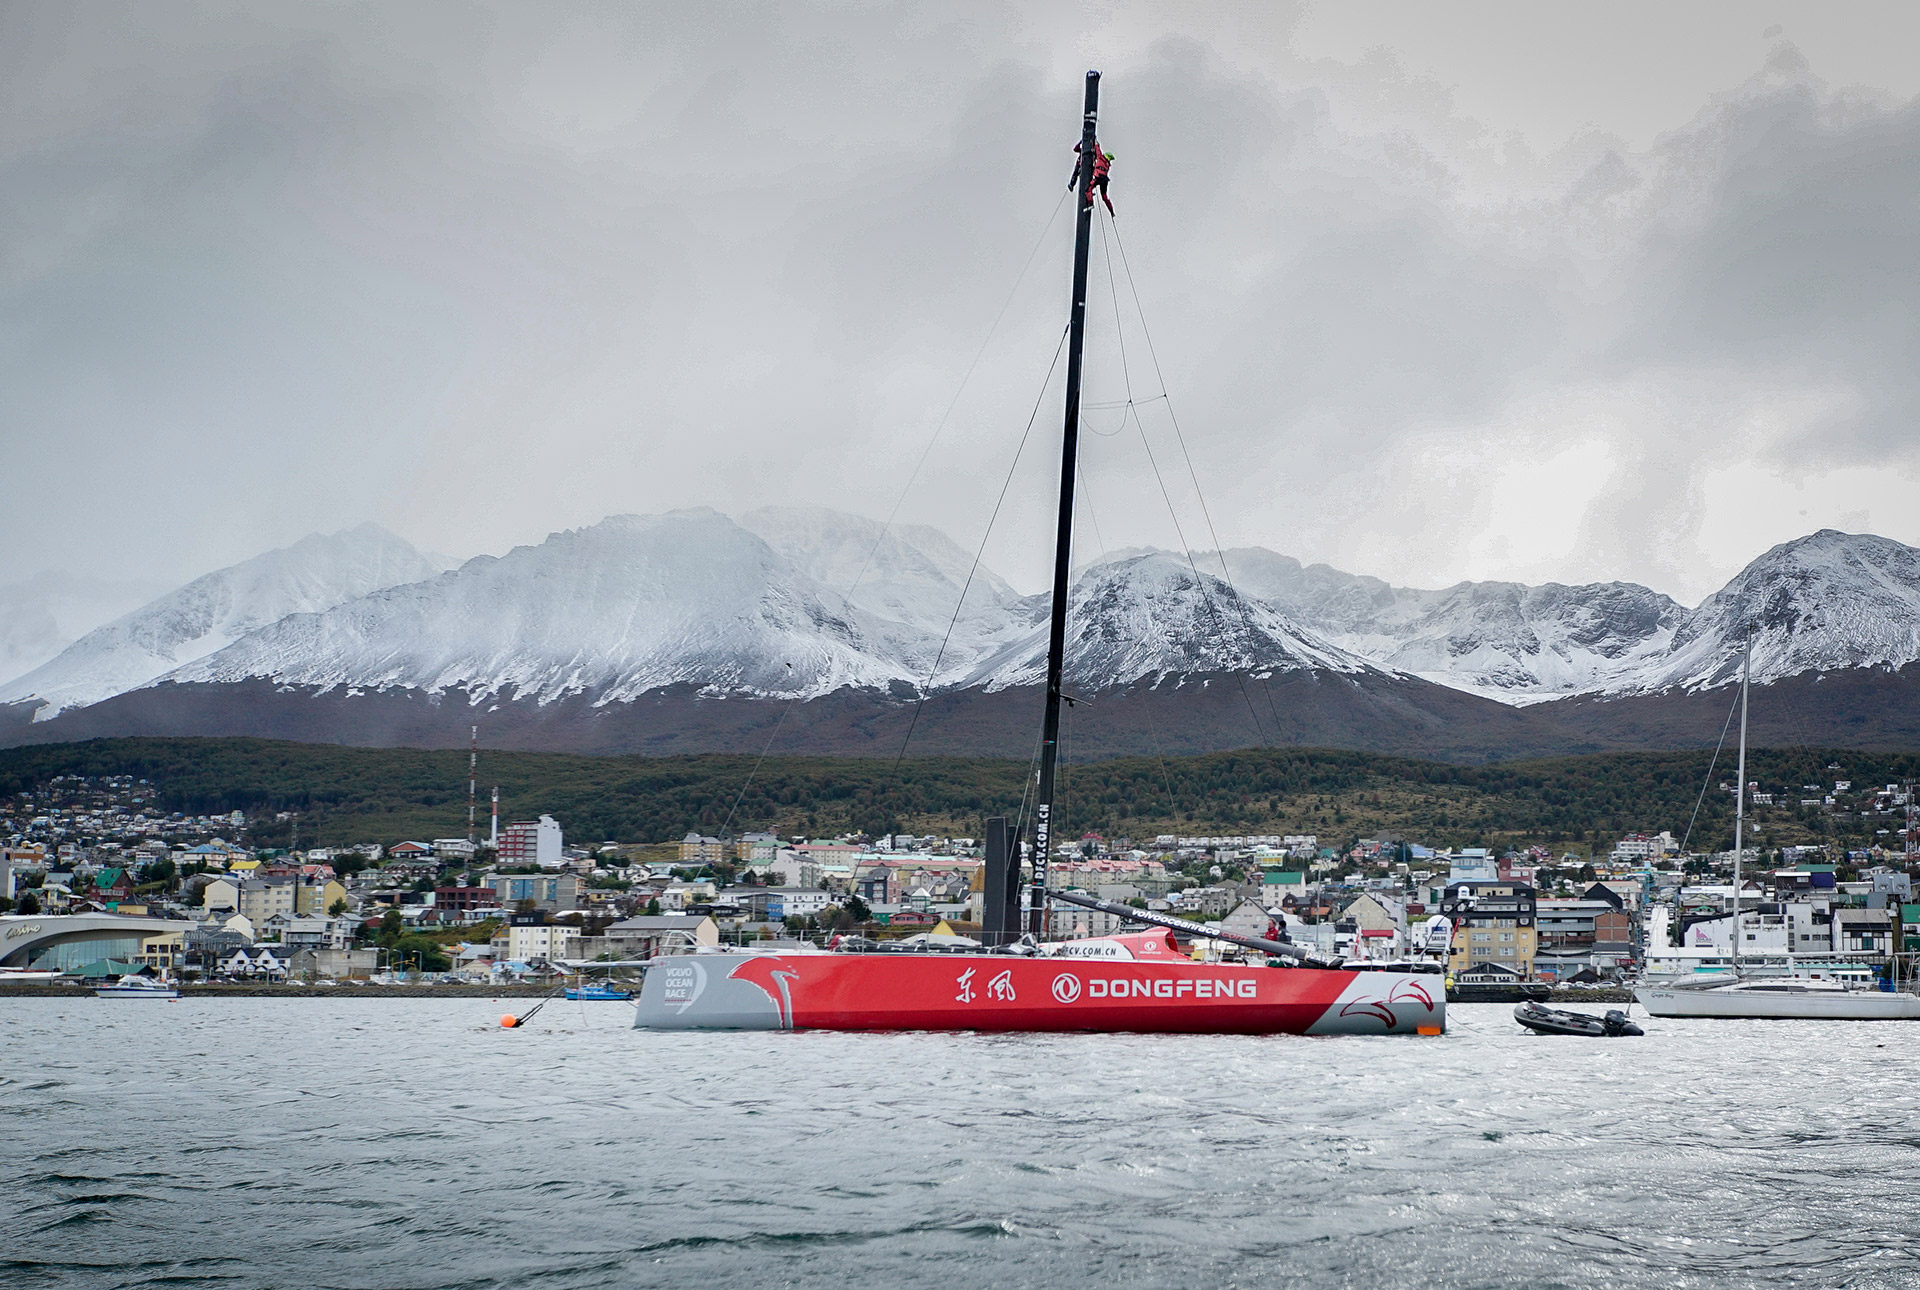 DAmian Foxall top ocean race moments: Dongfeng dismasted in the Southern Ocean during the 2014-15 Volvo Ocean Race. Repair mast in Ushuaia.